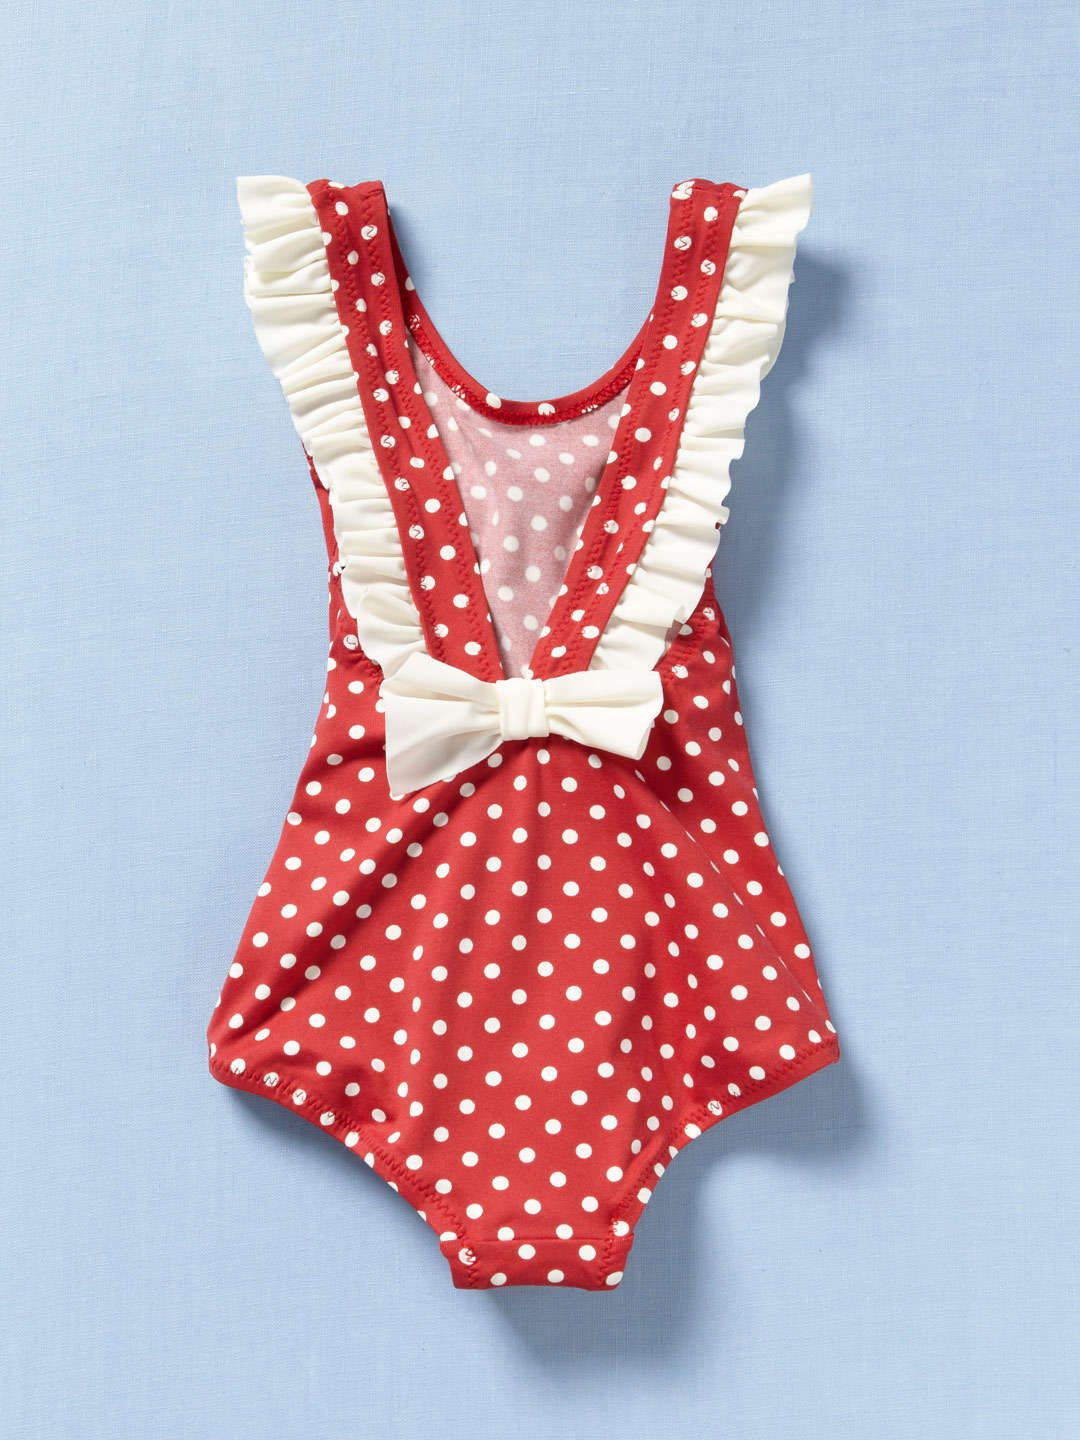 b543128bf Love little girl swimming suits that aren't bikinis! Bow-back red and cream  polka dot swimsuit.